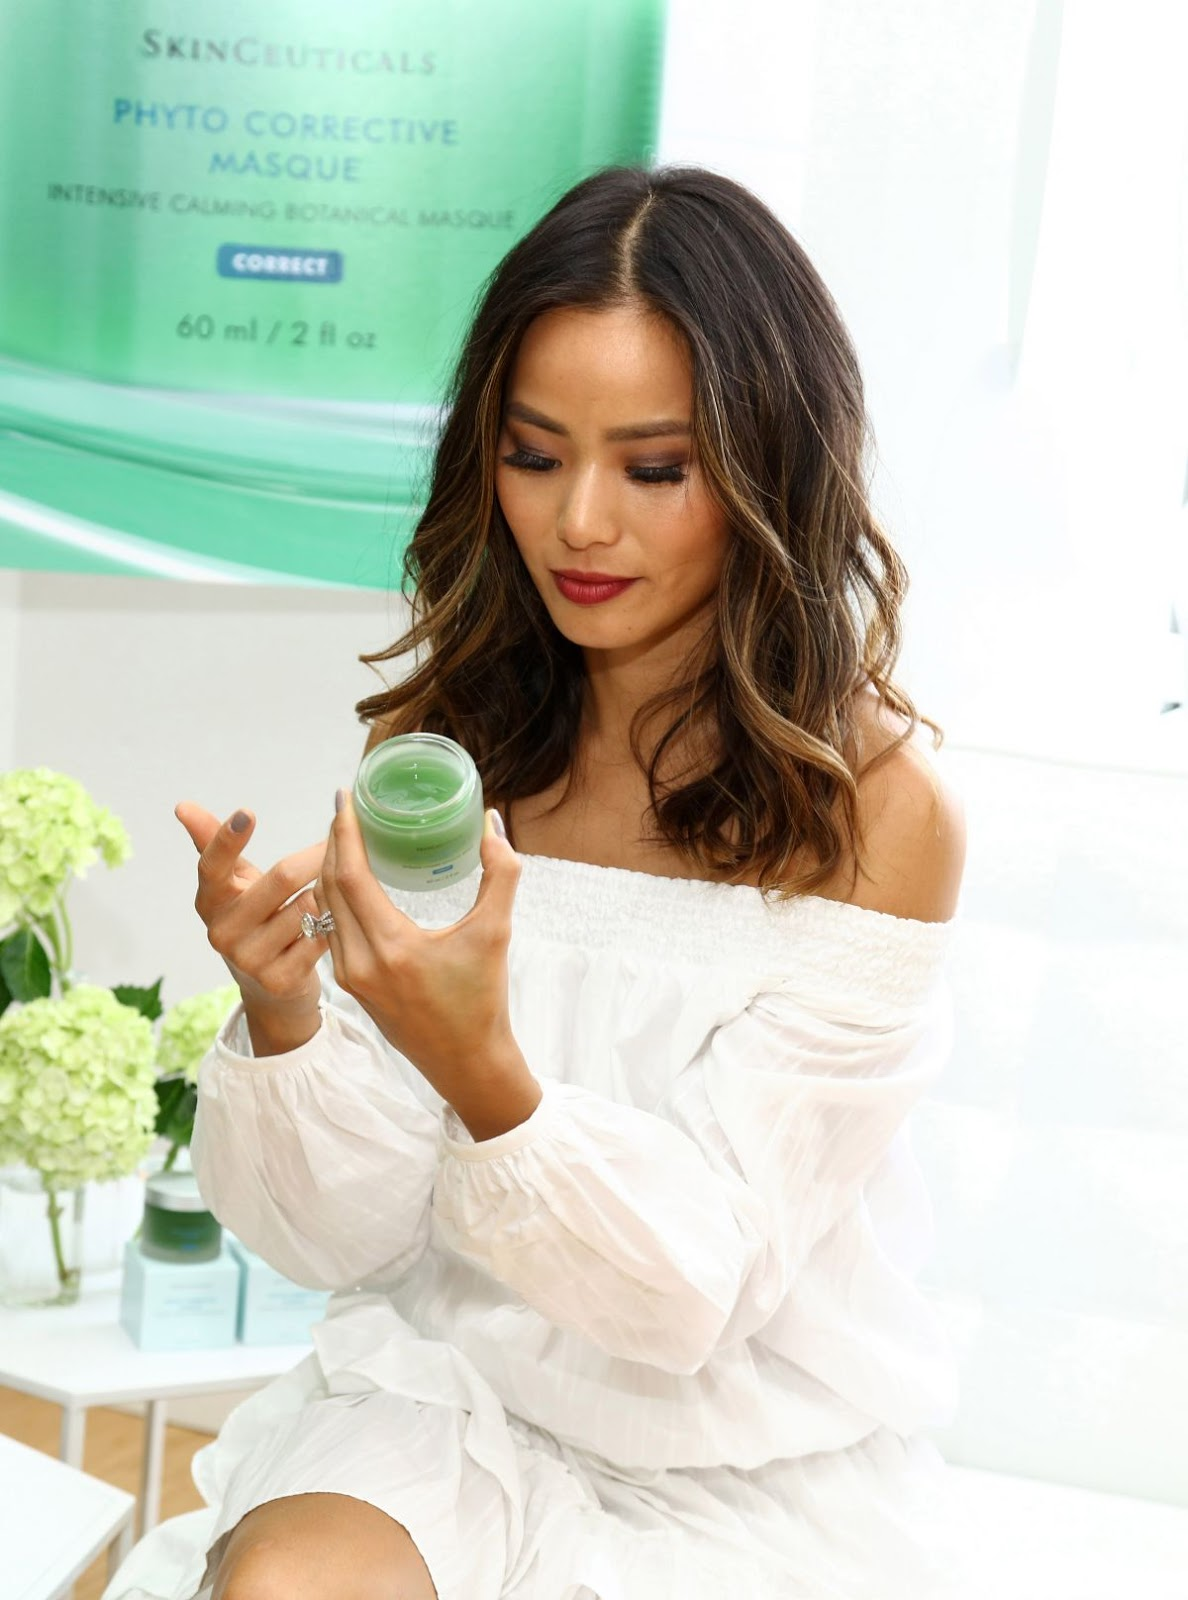 Jamie Chung at Skinceuticals Skincare Event in Los Angeles